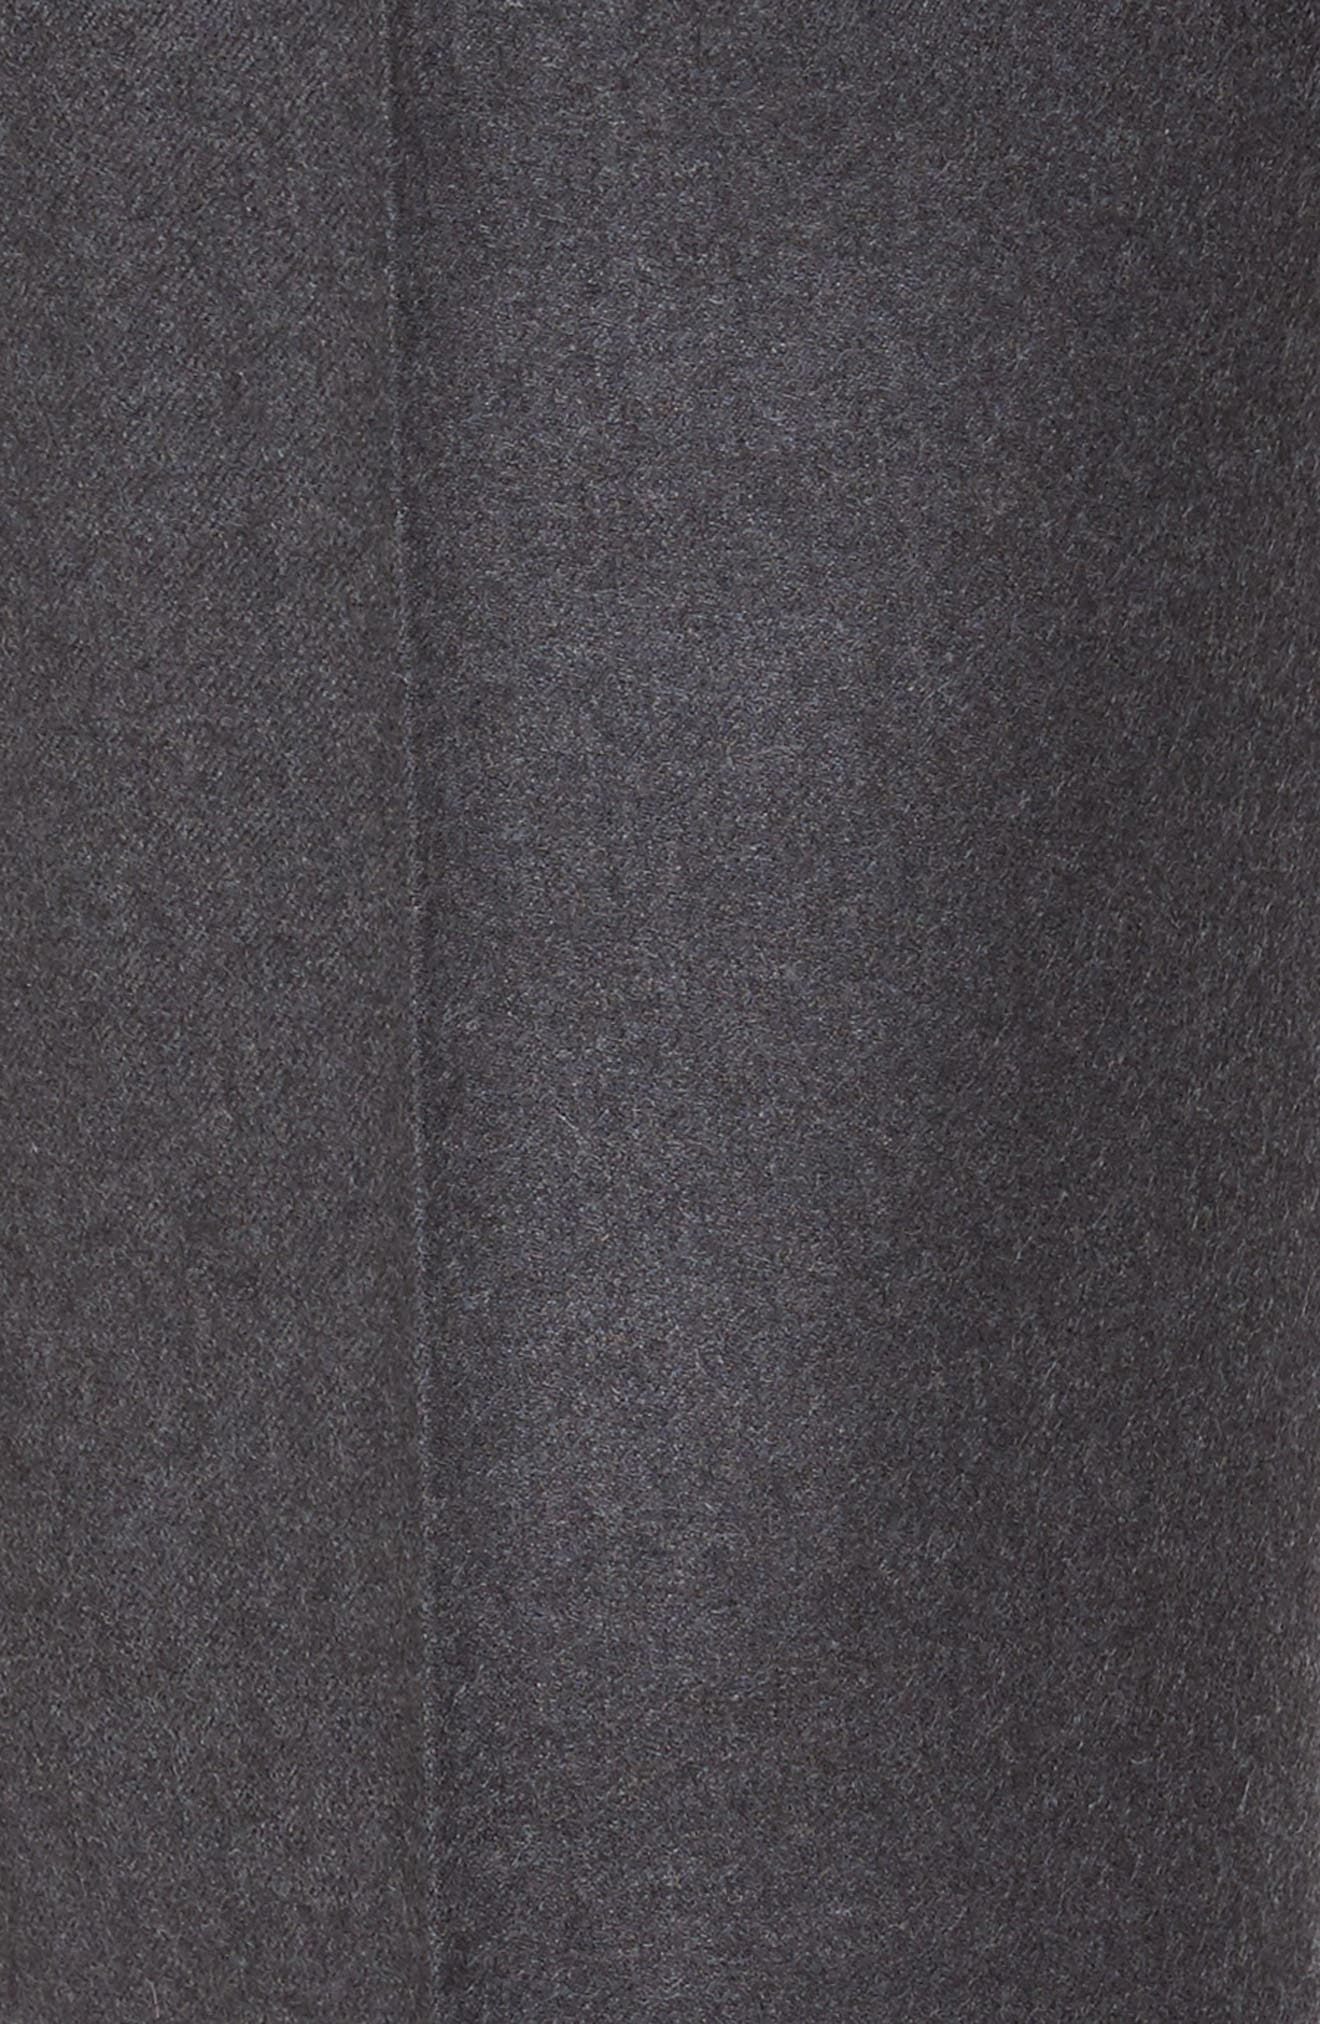 Flat Front Solid Wool Trousers,                             Alternate thumbnail 2, color,                             020